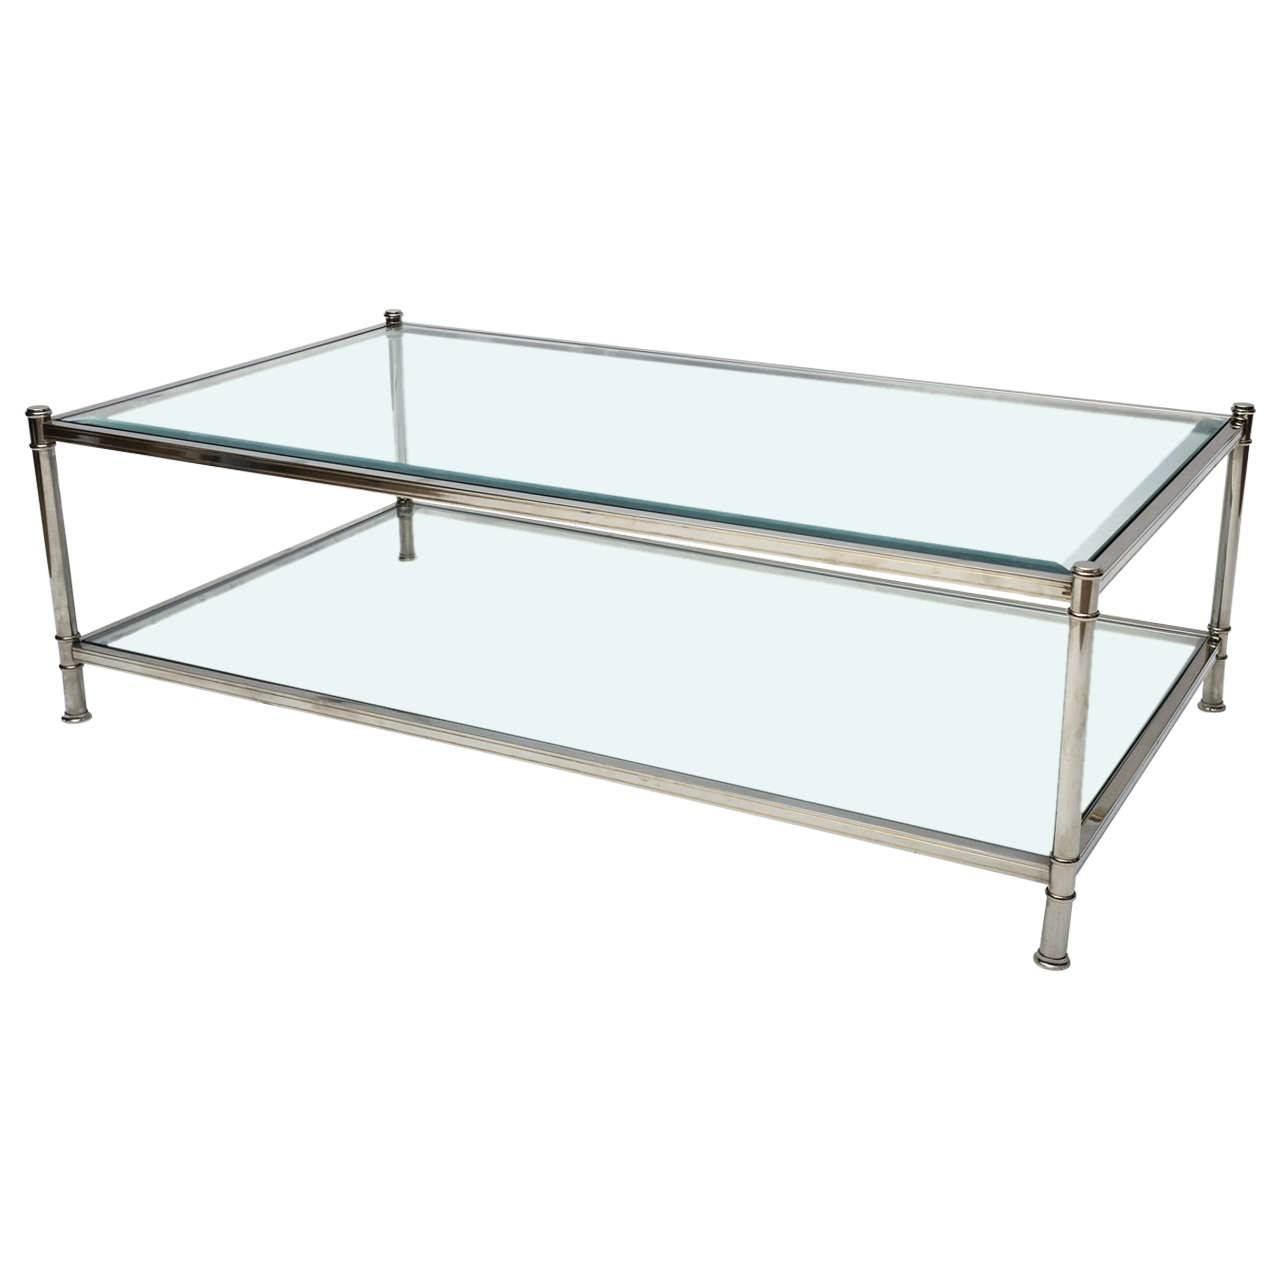 Furniture. Chrome And Glass Coffee Table Design Ideas: Clear with Glass Chrome Coffee Tables (Image 14 of 30)